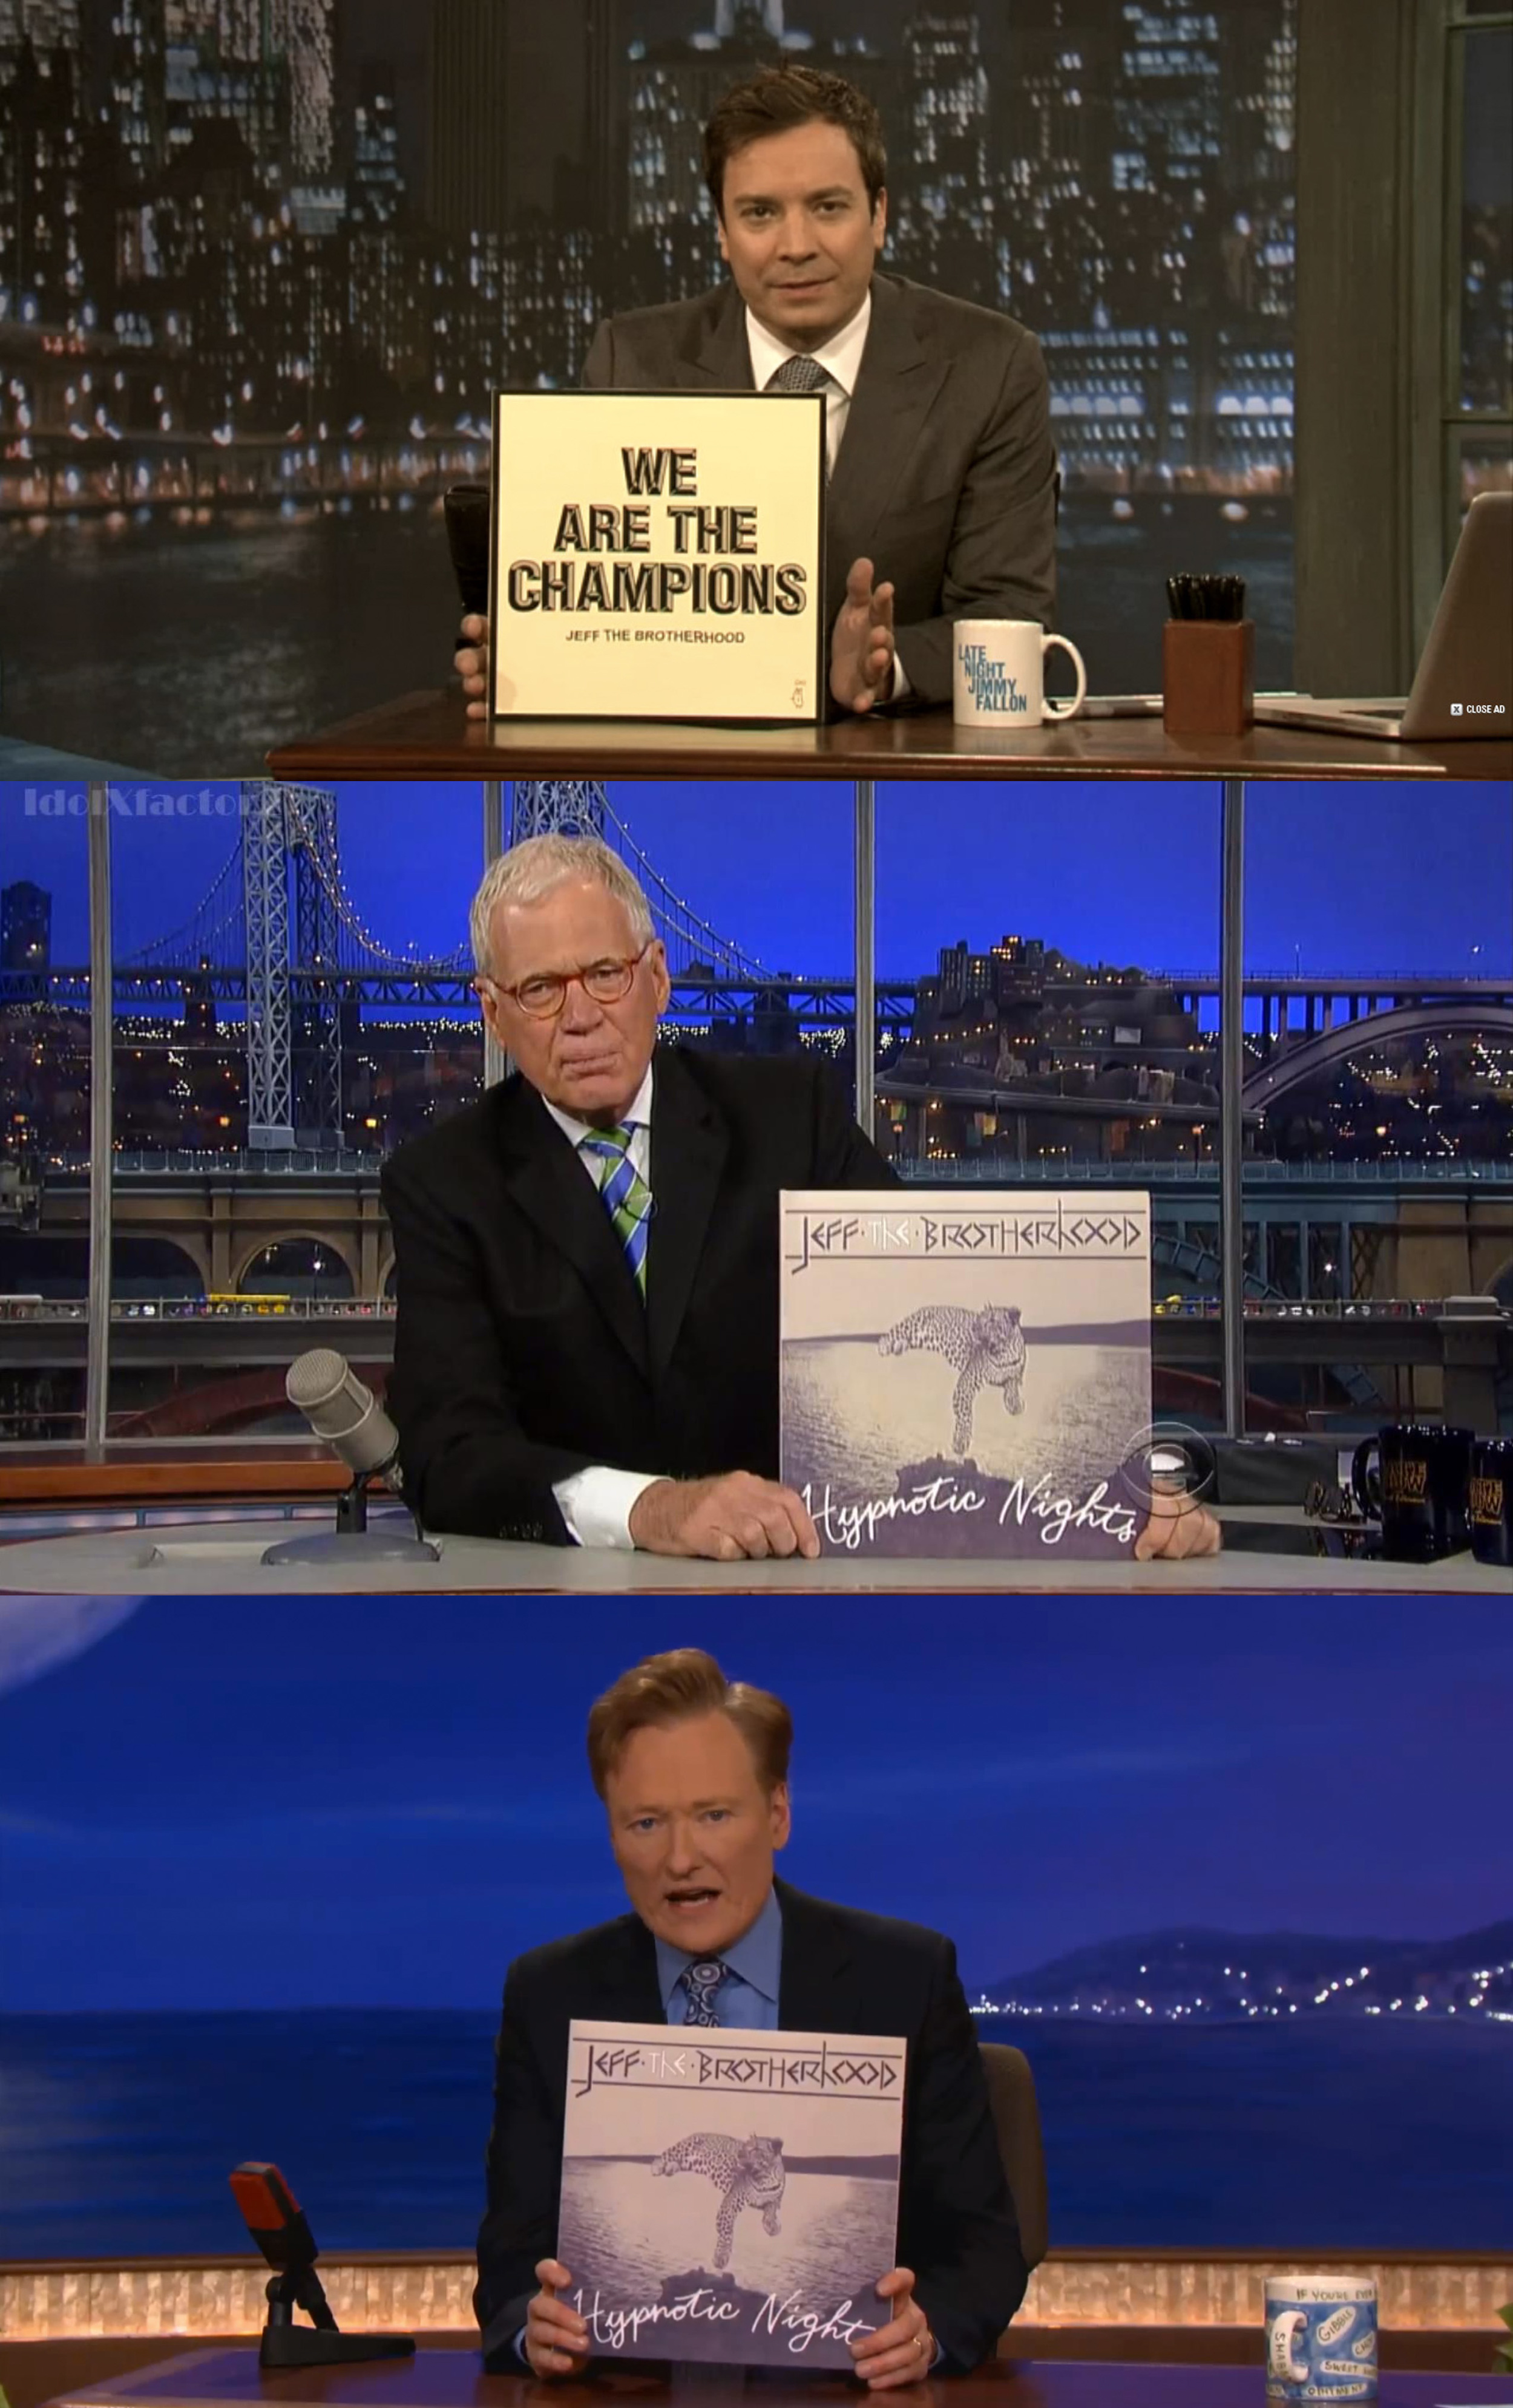 Album art for Jeff the Brotherhood being held up by late night talk show personalities.